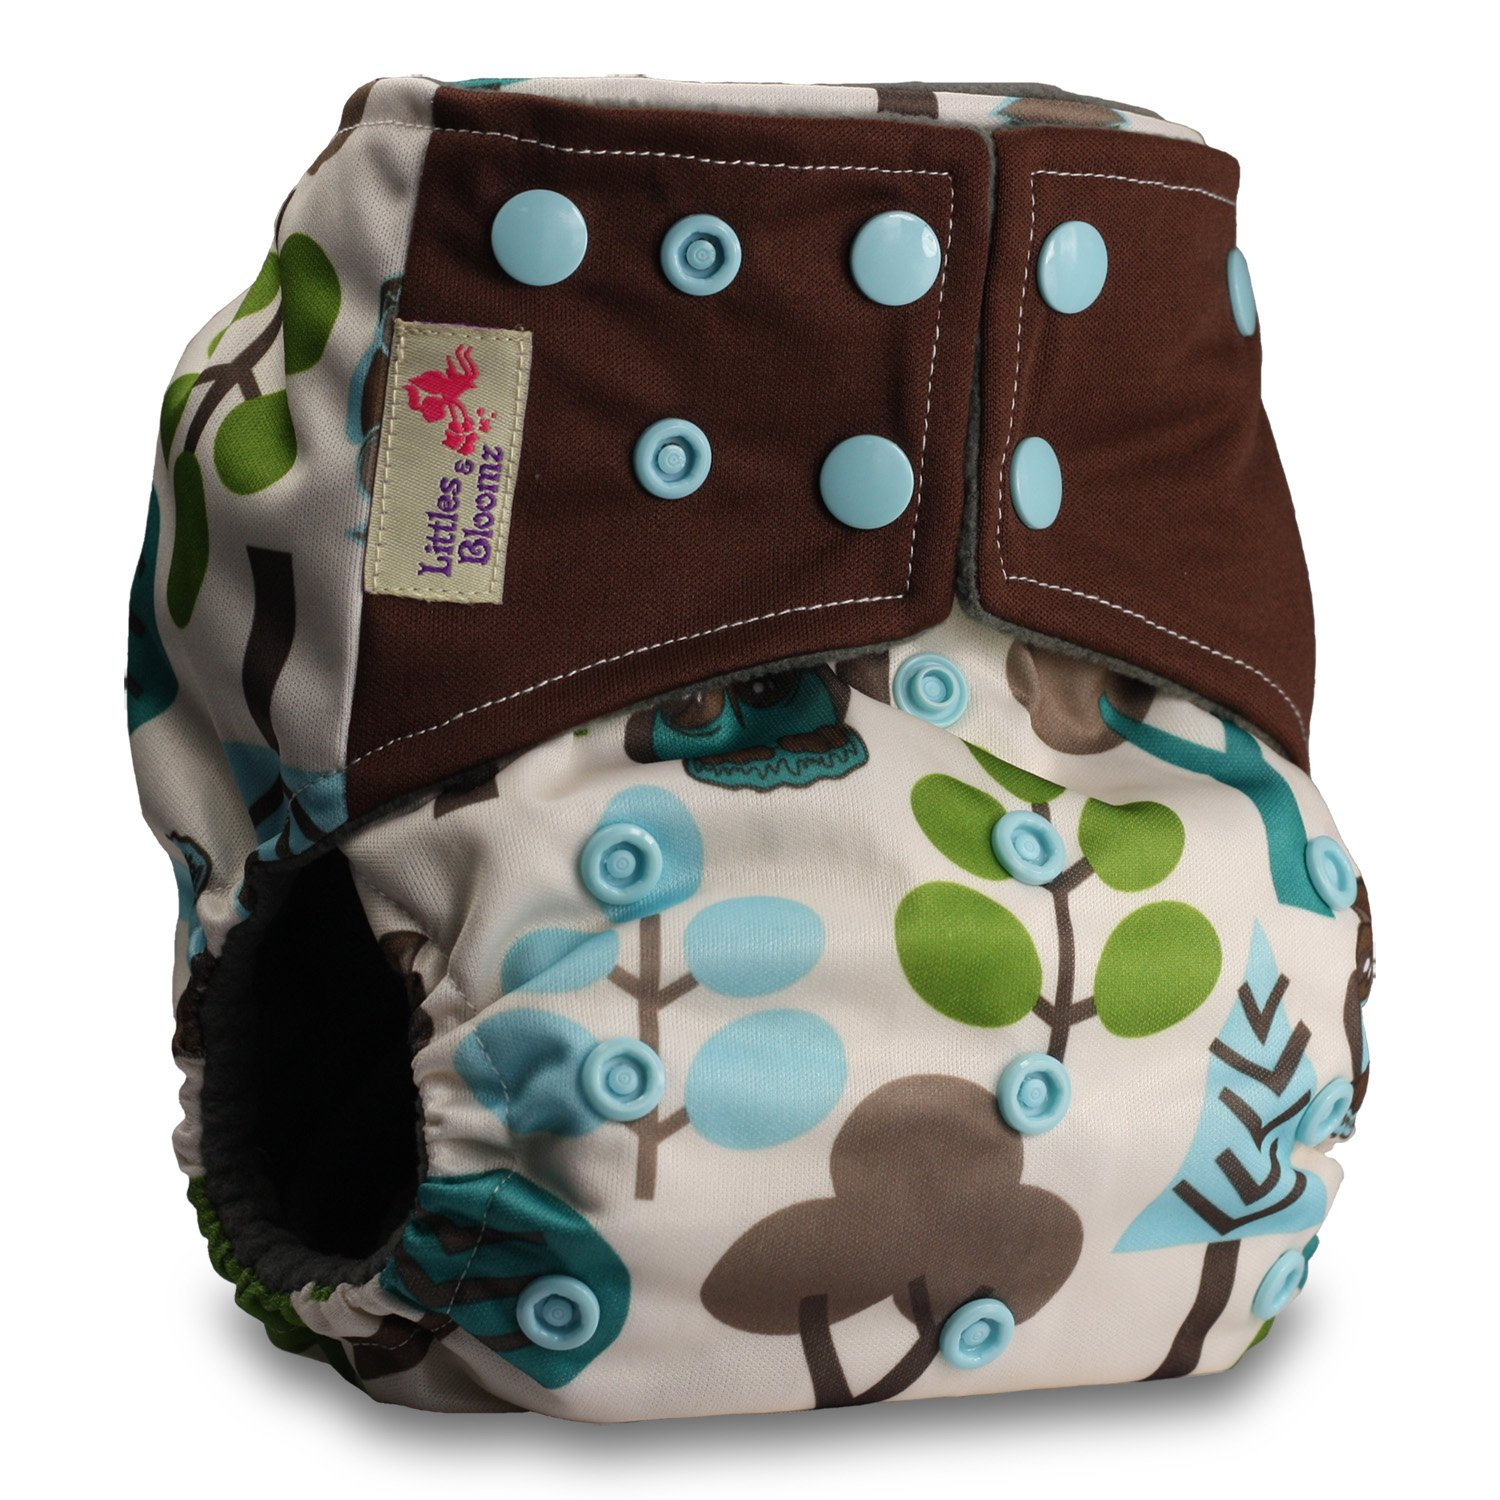 Littles /& Bloomz Pattern 13 Reusable Pocket Real Cloth Nappy Washable Diaper Bamboo Charcoal Without Insert